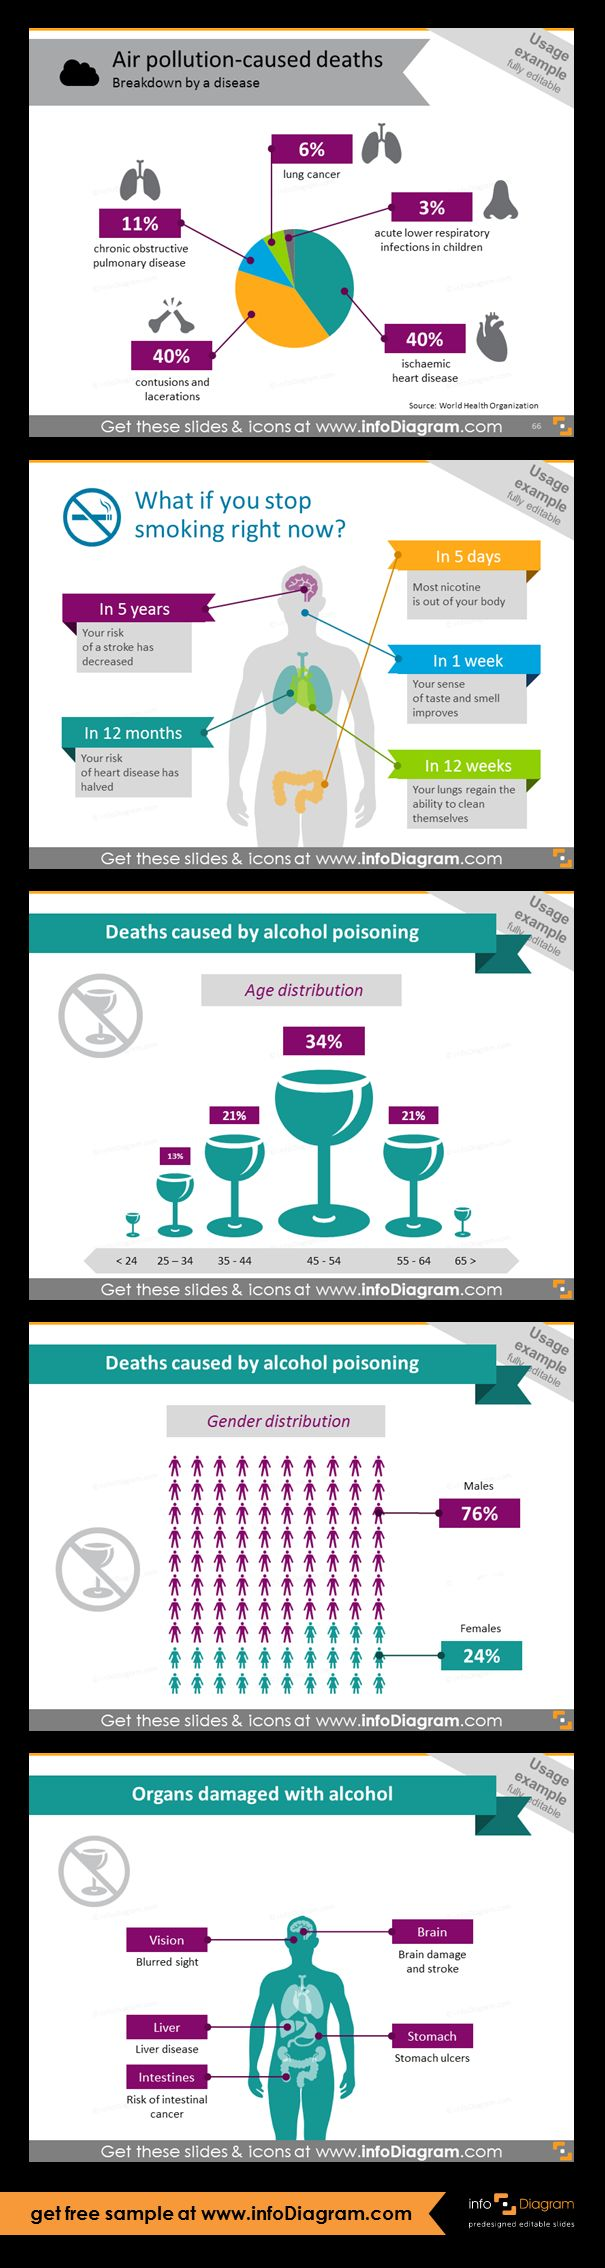 Medical and healthcare infographics templates:    1. air pollution-caused illnesses (breakdown by a disease).    2. What if you stop smoking right now? - example do-it-yourself infographics made in PowerPoint about effects of smoking on human health    3. Infographics on alcohol poisoing (by age and gender)     4. Organs damaged by alcohol infographics, fully-editable in PowerPoint